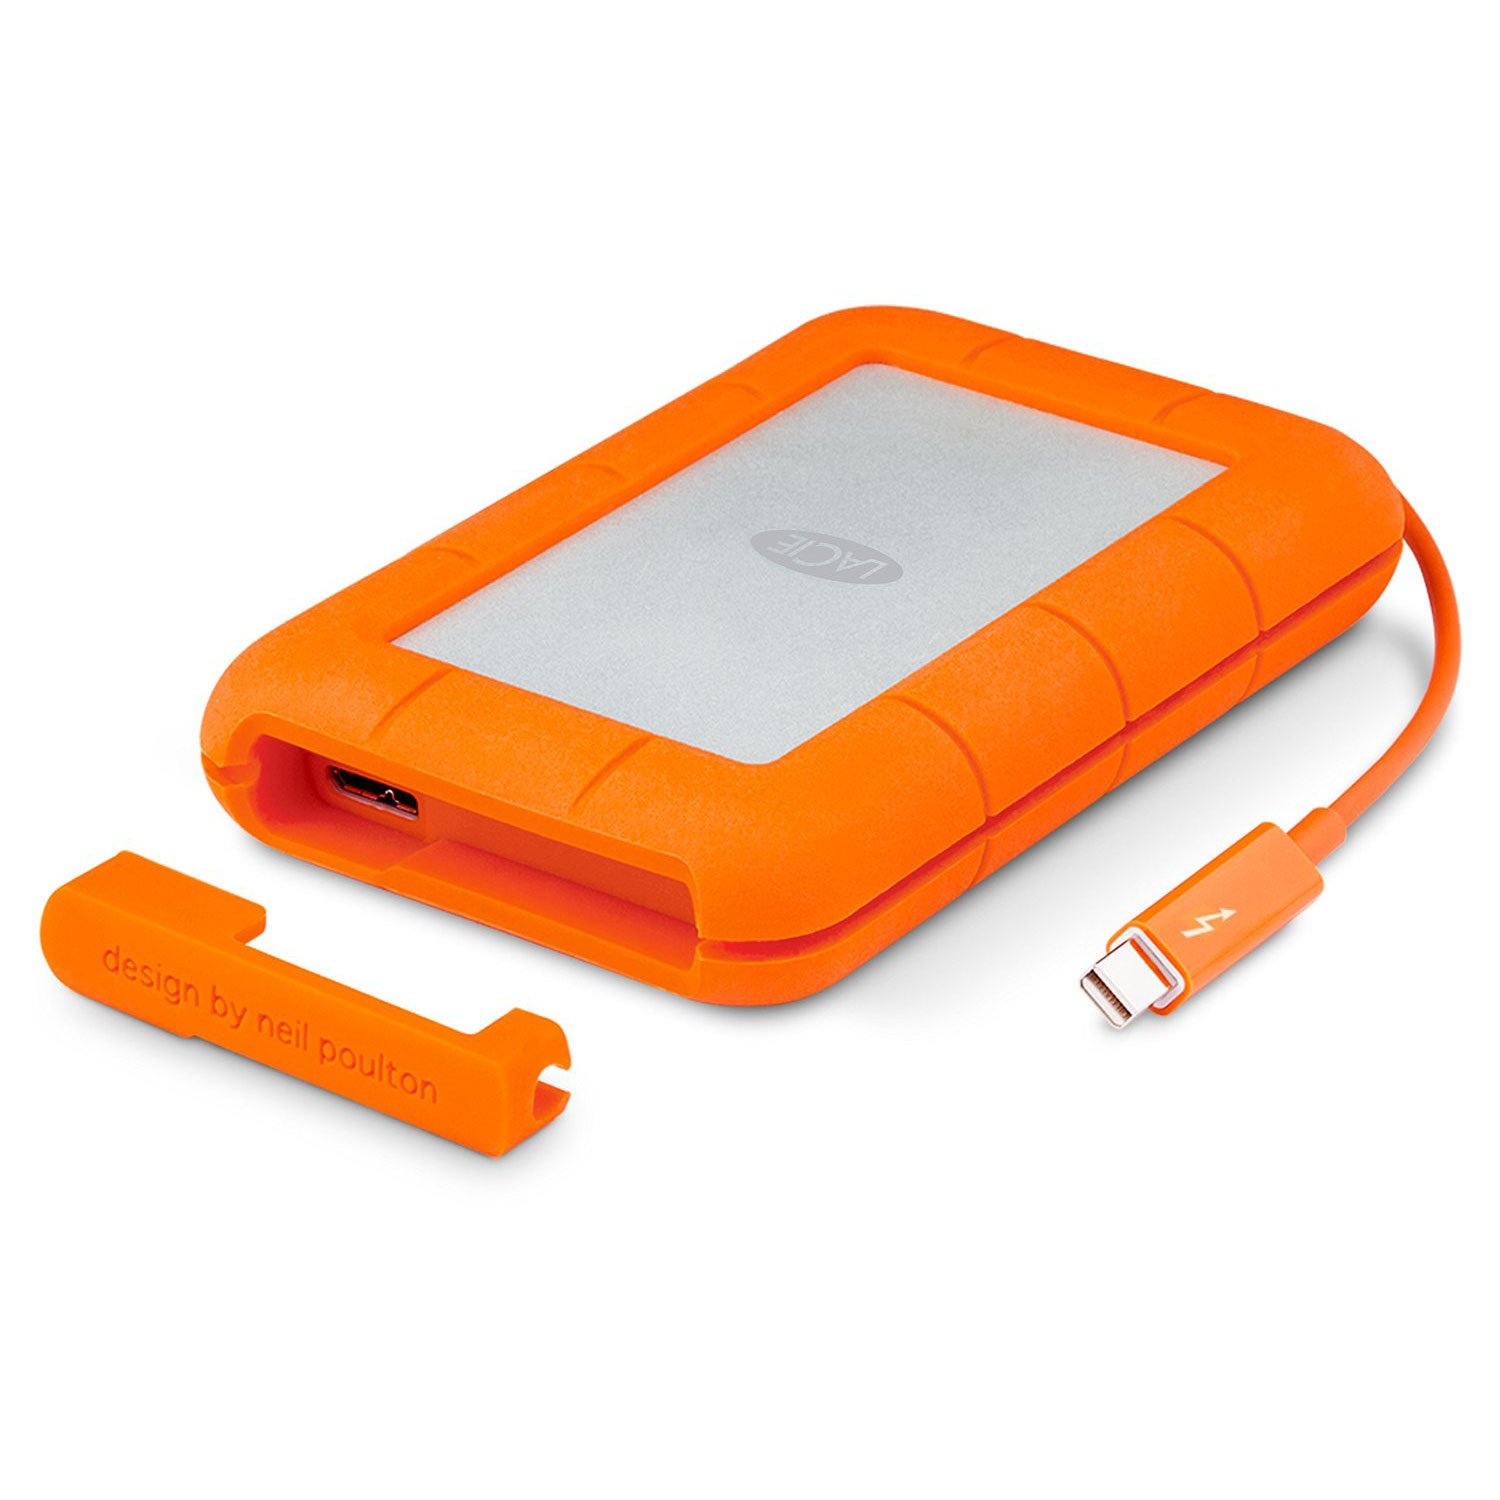 LaCie Rugged Thunderbolt and USB 3.0 2TB Portable Hard Drive LAC9000489 by LaCie